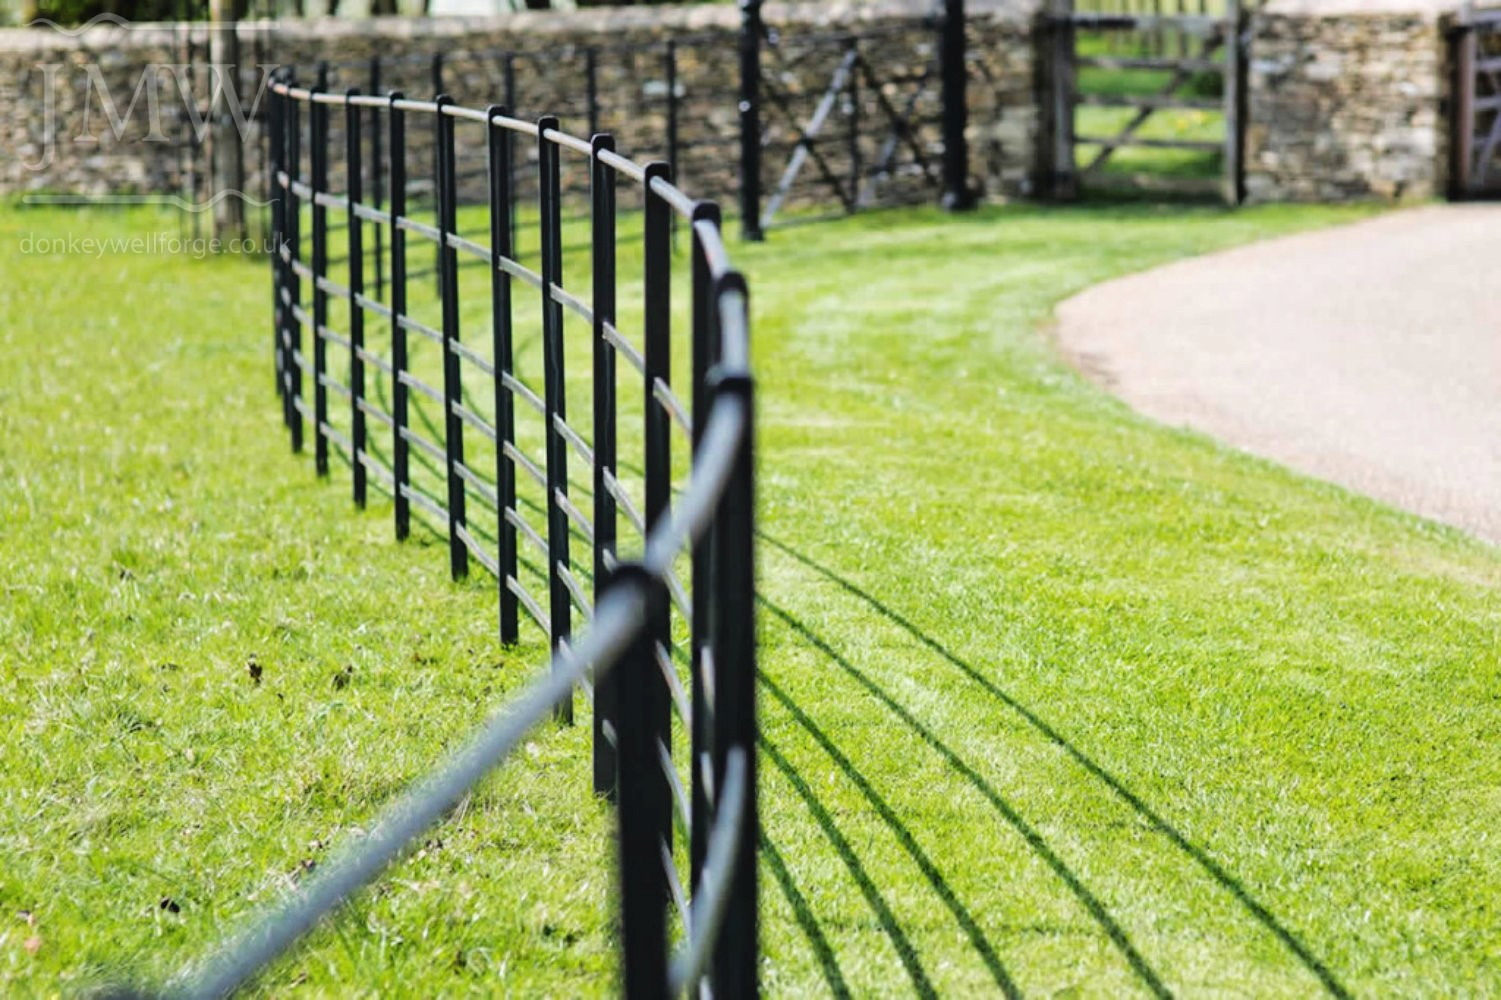 ornate-church-ironwork-fencing-cotswolds-donkeywell-forge